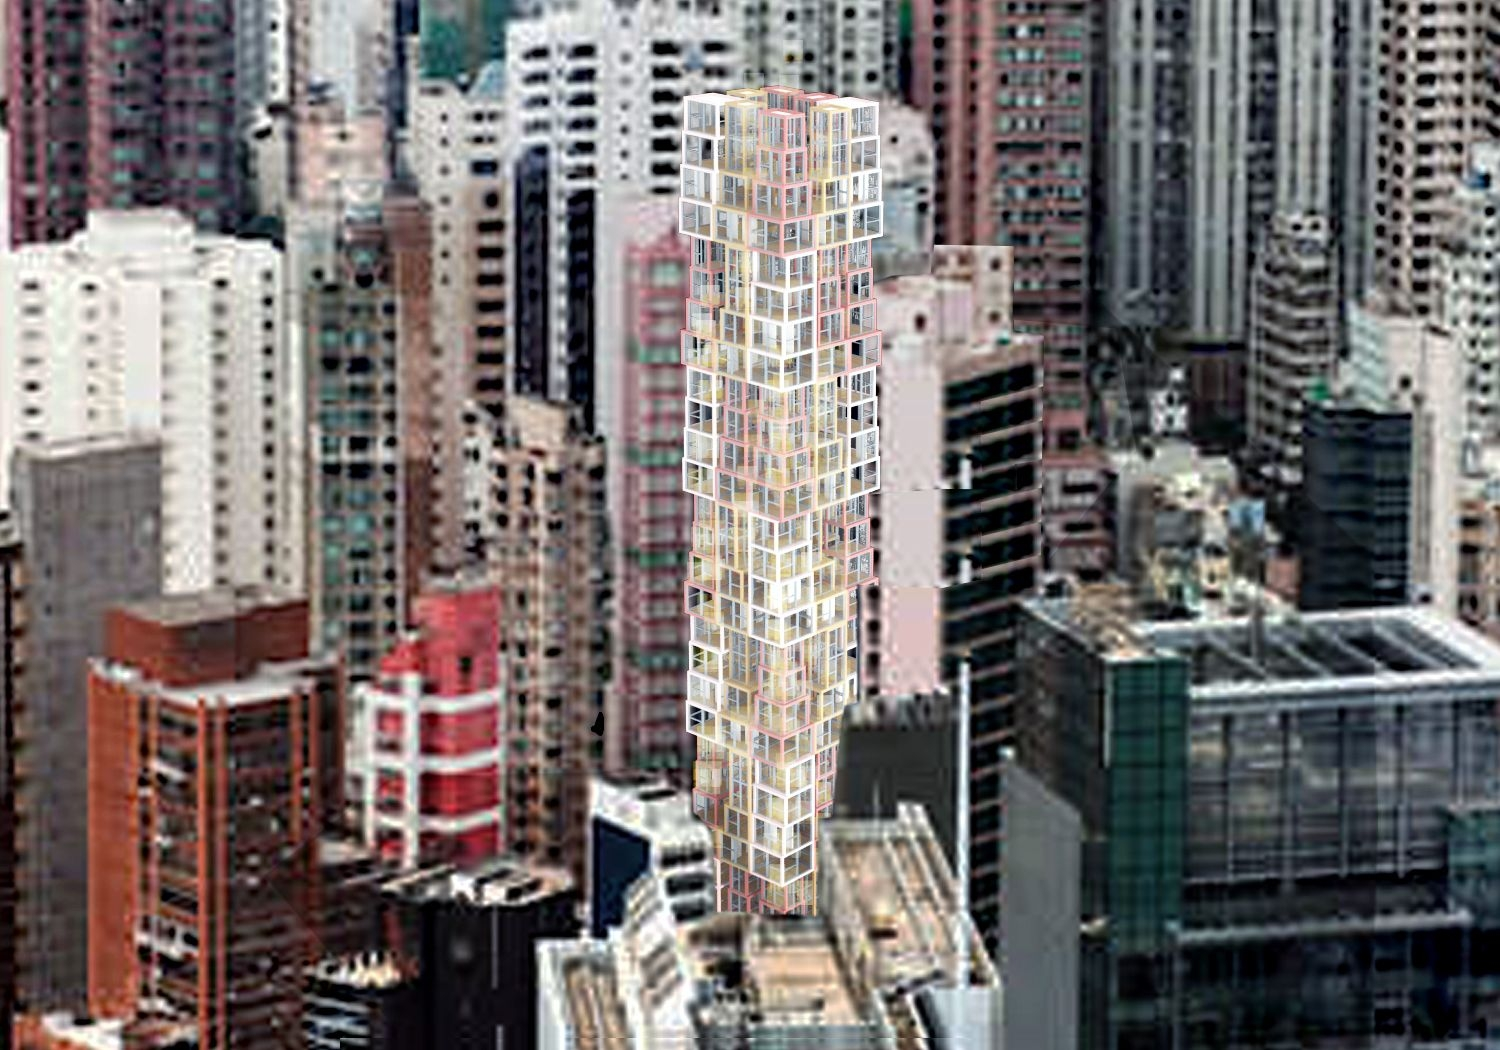 Kwong-Von-Glinow-.-Lamyuktseung-.-Towers-within-a-Tower-.-Hong-Kong-5.jpg